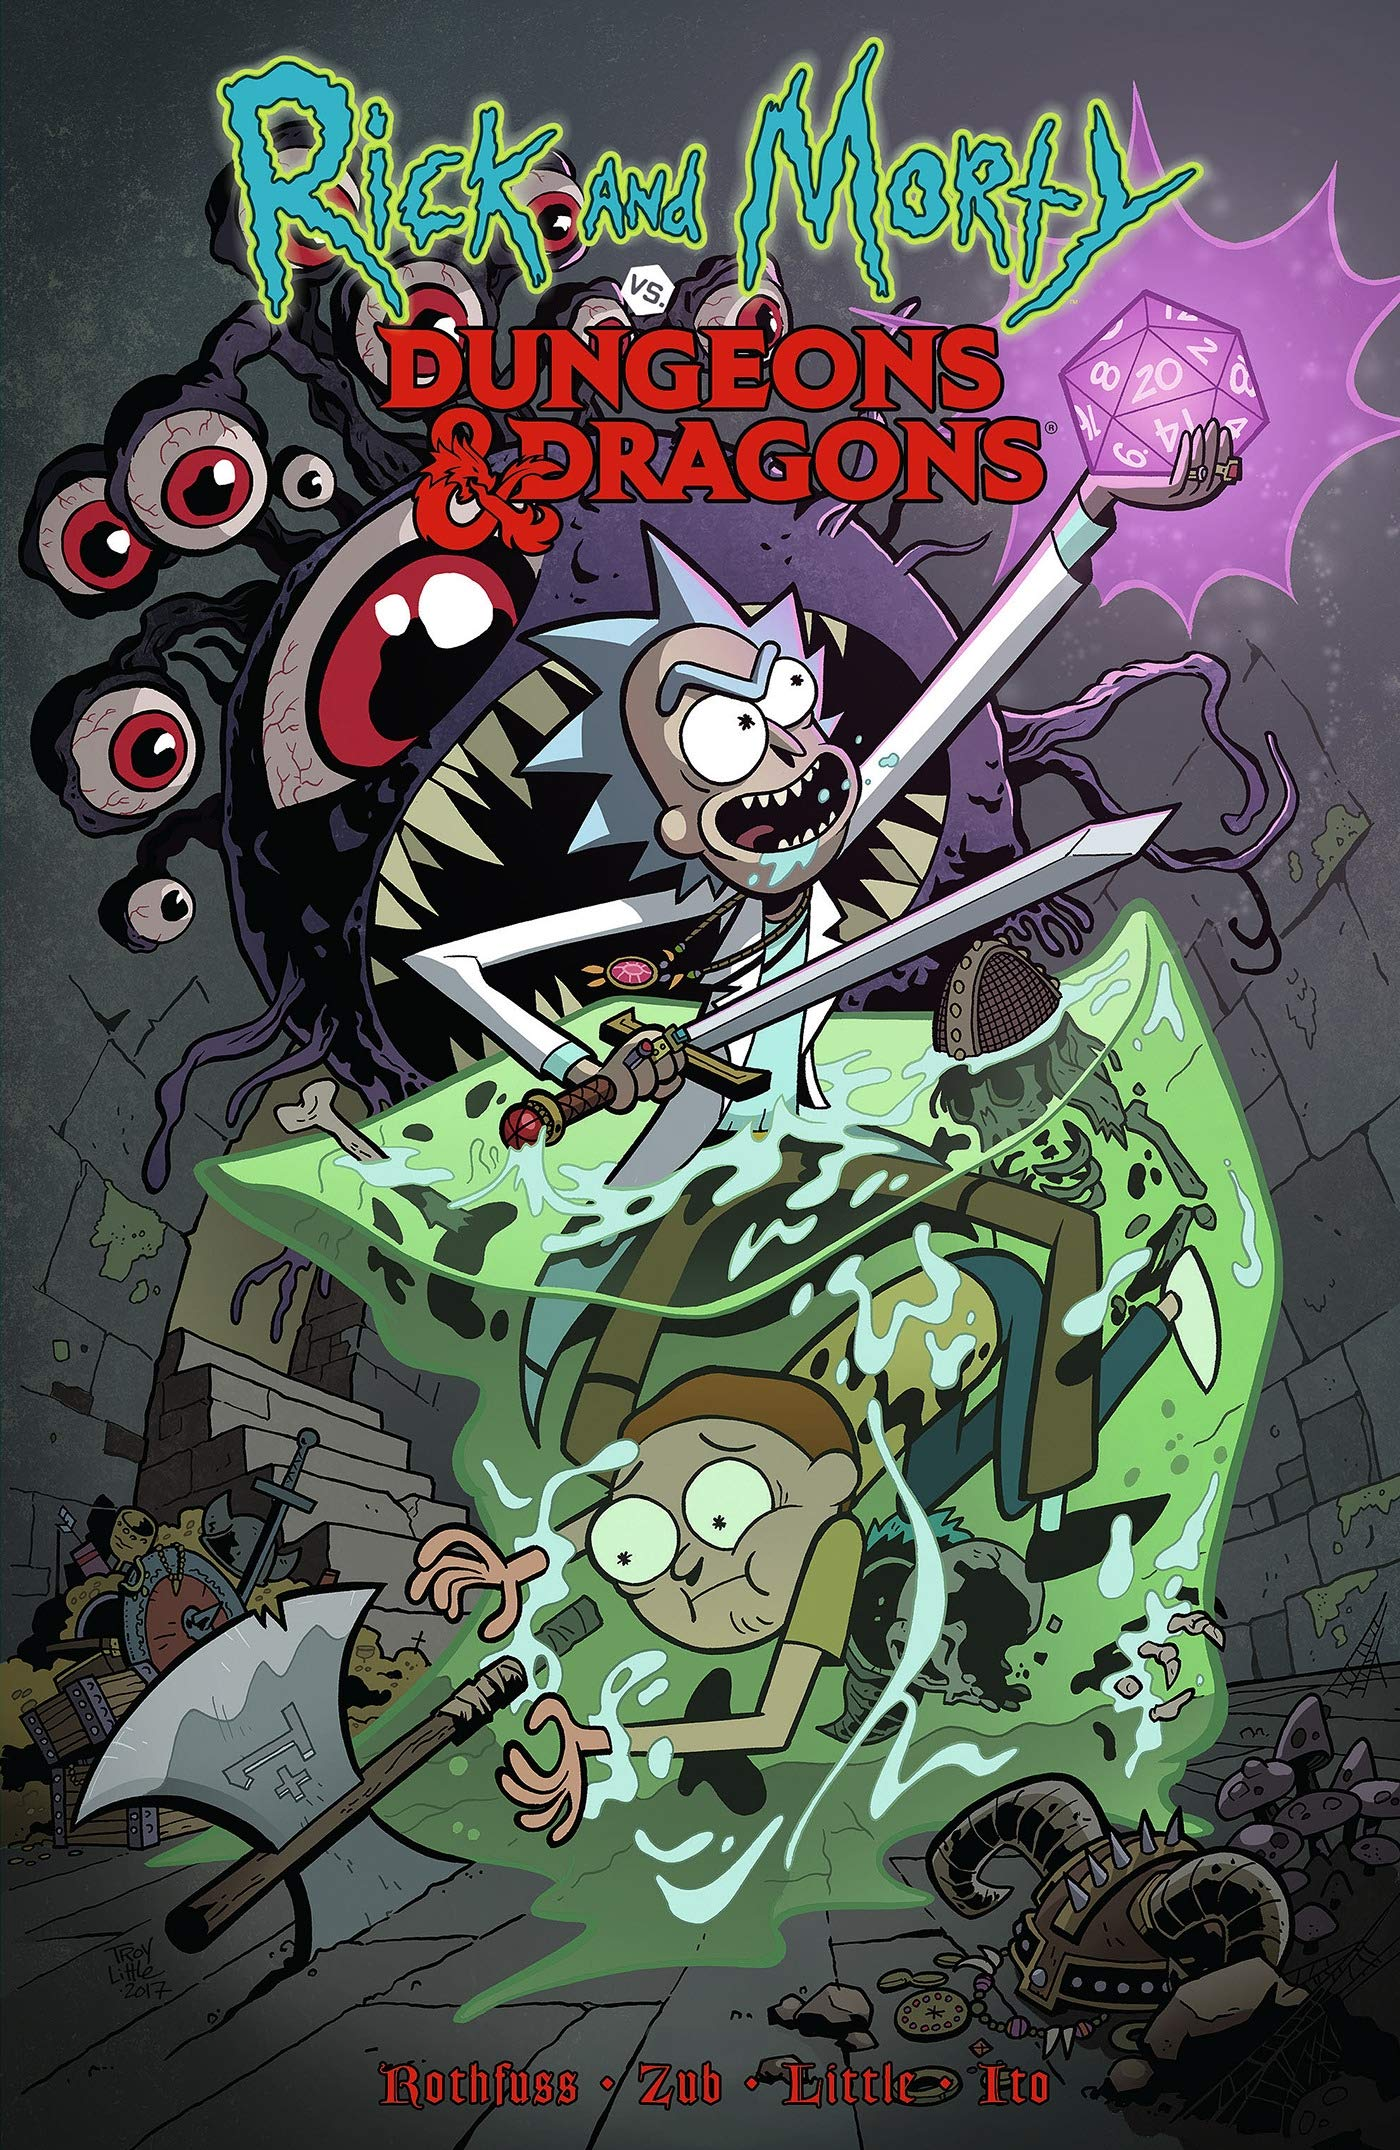 Amazon Com Rick And Morty Vs Dungeons Dragons 9781684054169 Rothfuss Patrick Zub Jim Little Troy Books